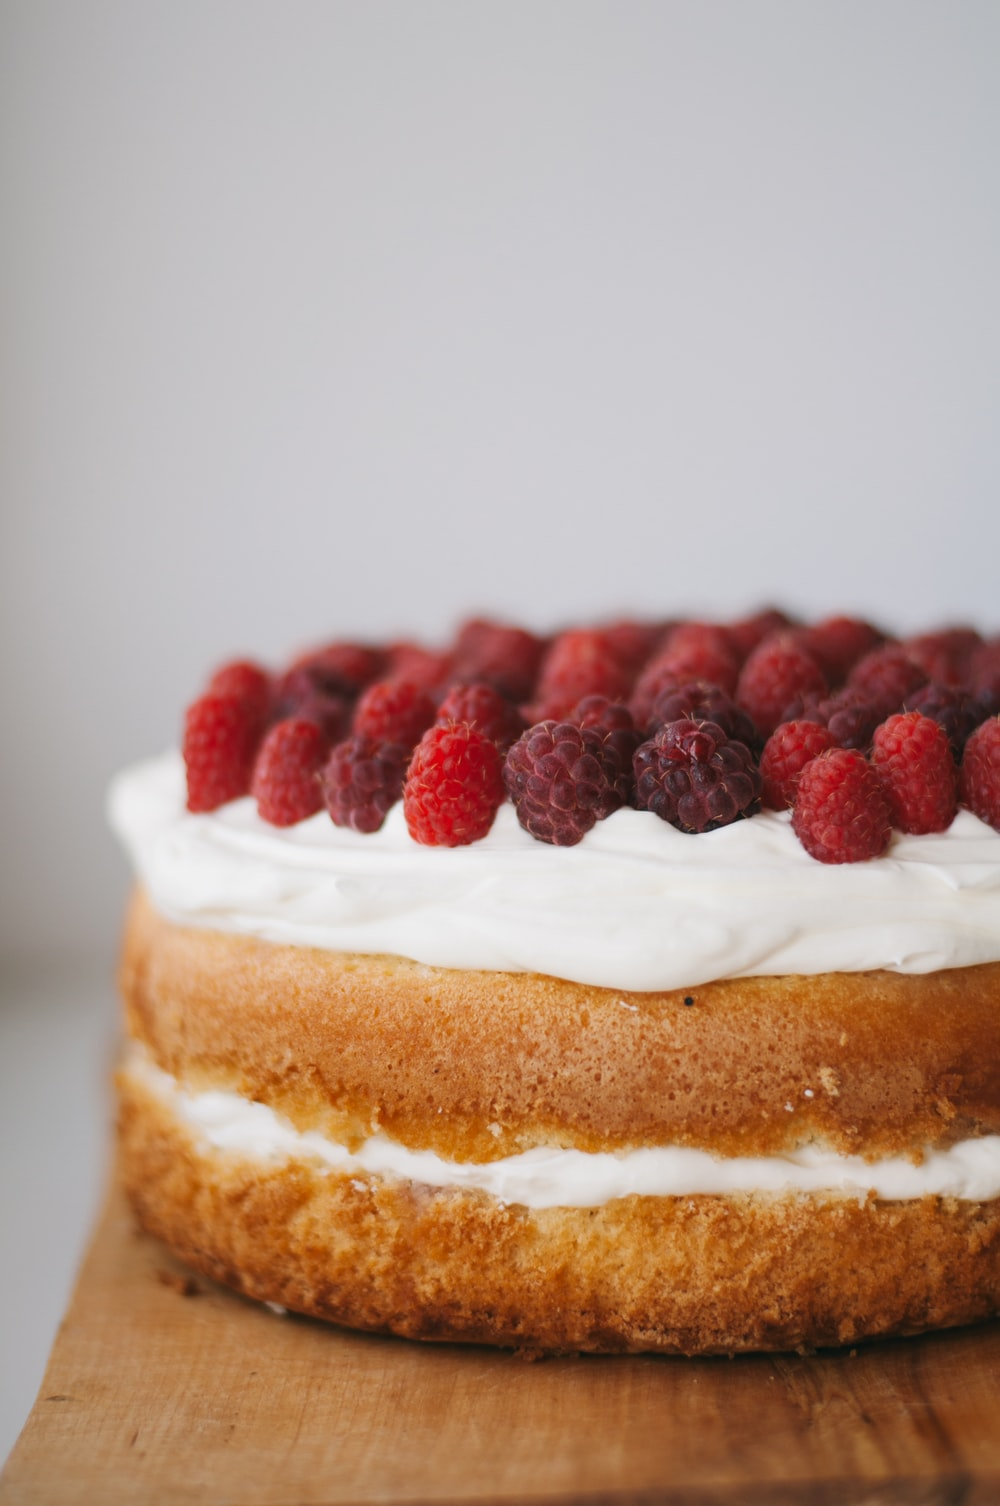 round cake with white frosting topped with red raspberries